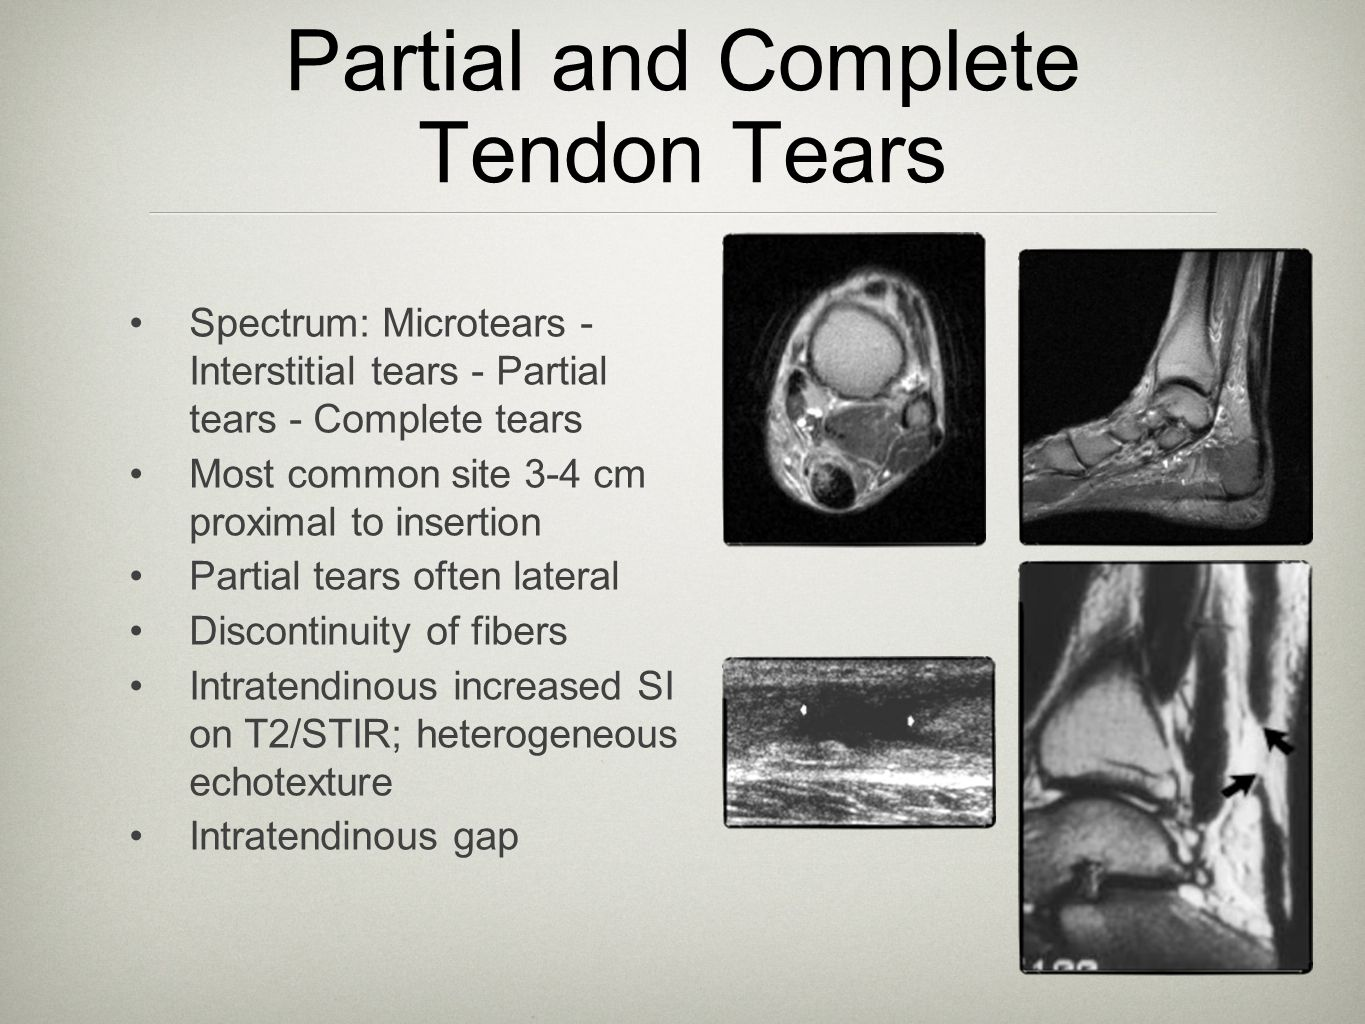 Partial and Complete Tendon Tears Spectrum: Microtears - Interstitial tears - Partial tears - Complete tears Most common site 3-4 cm proximal to inser